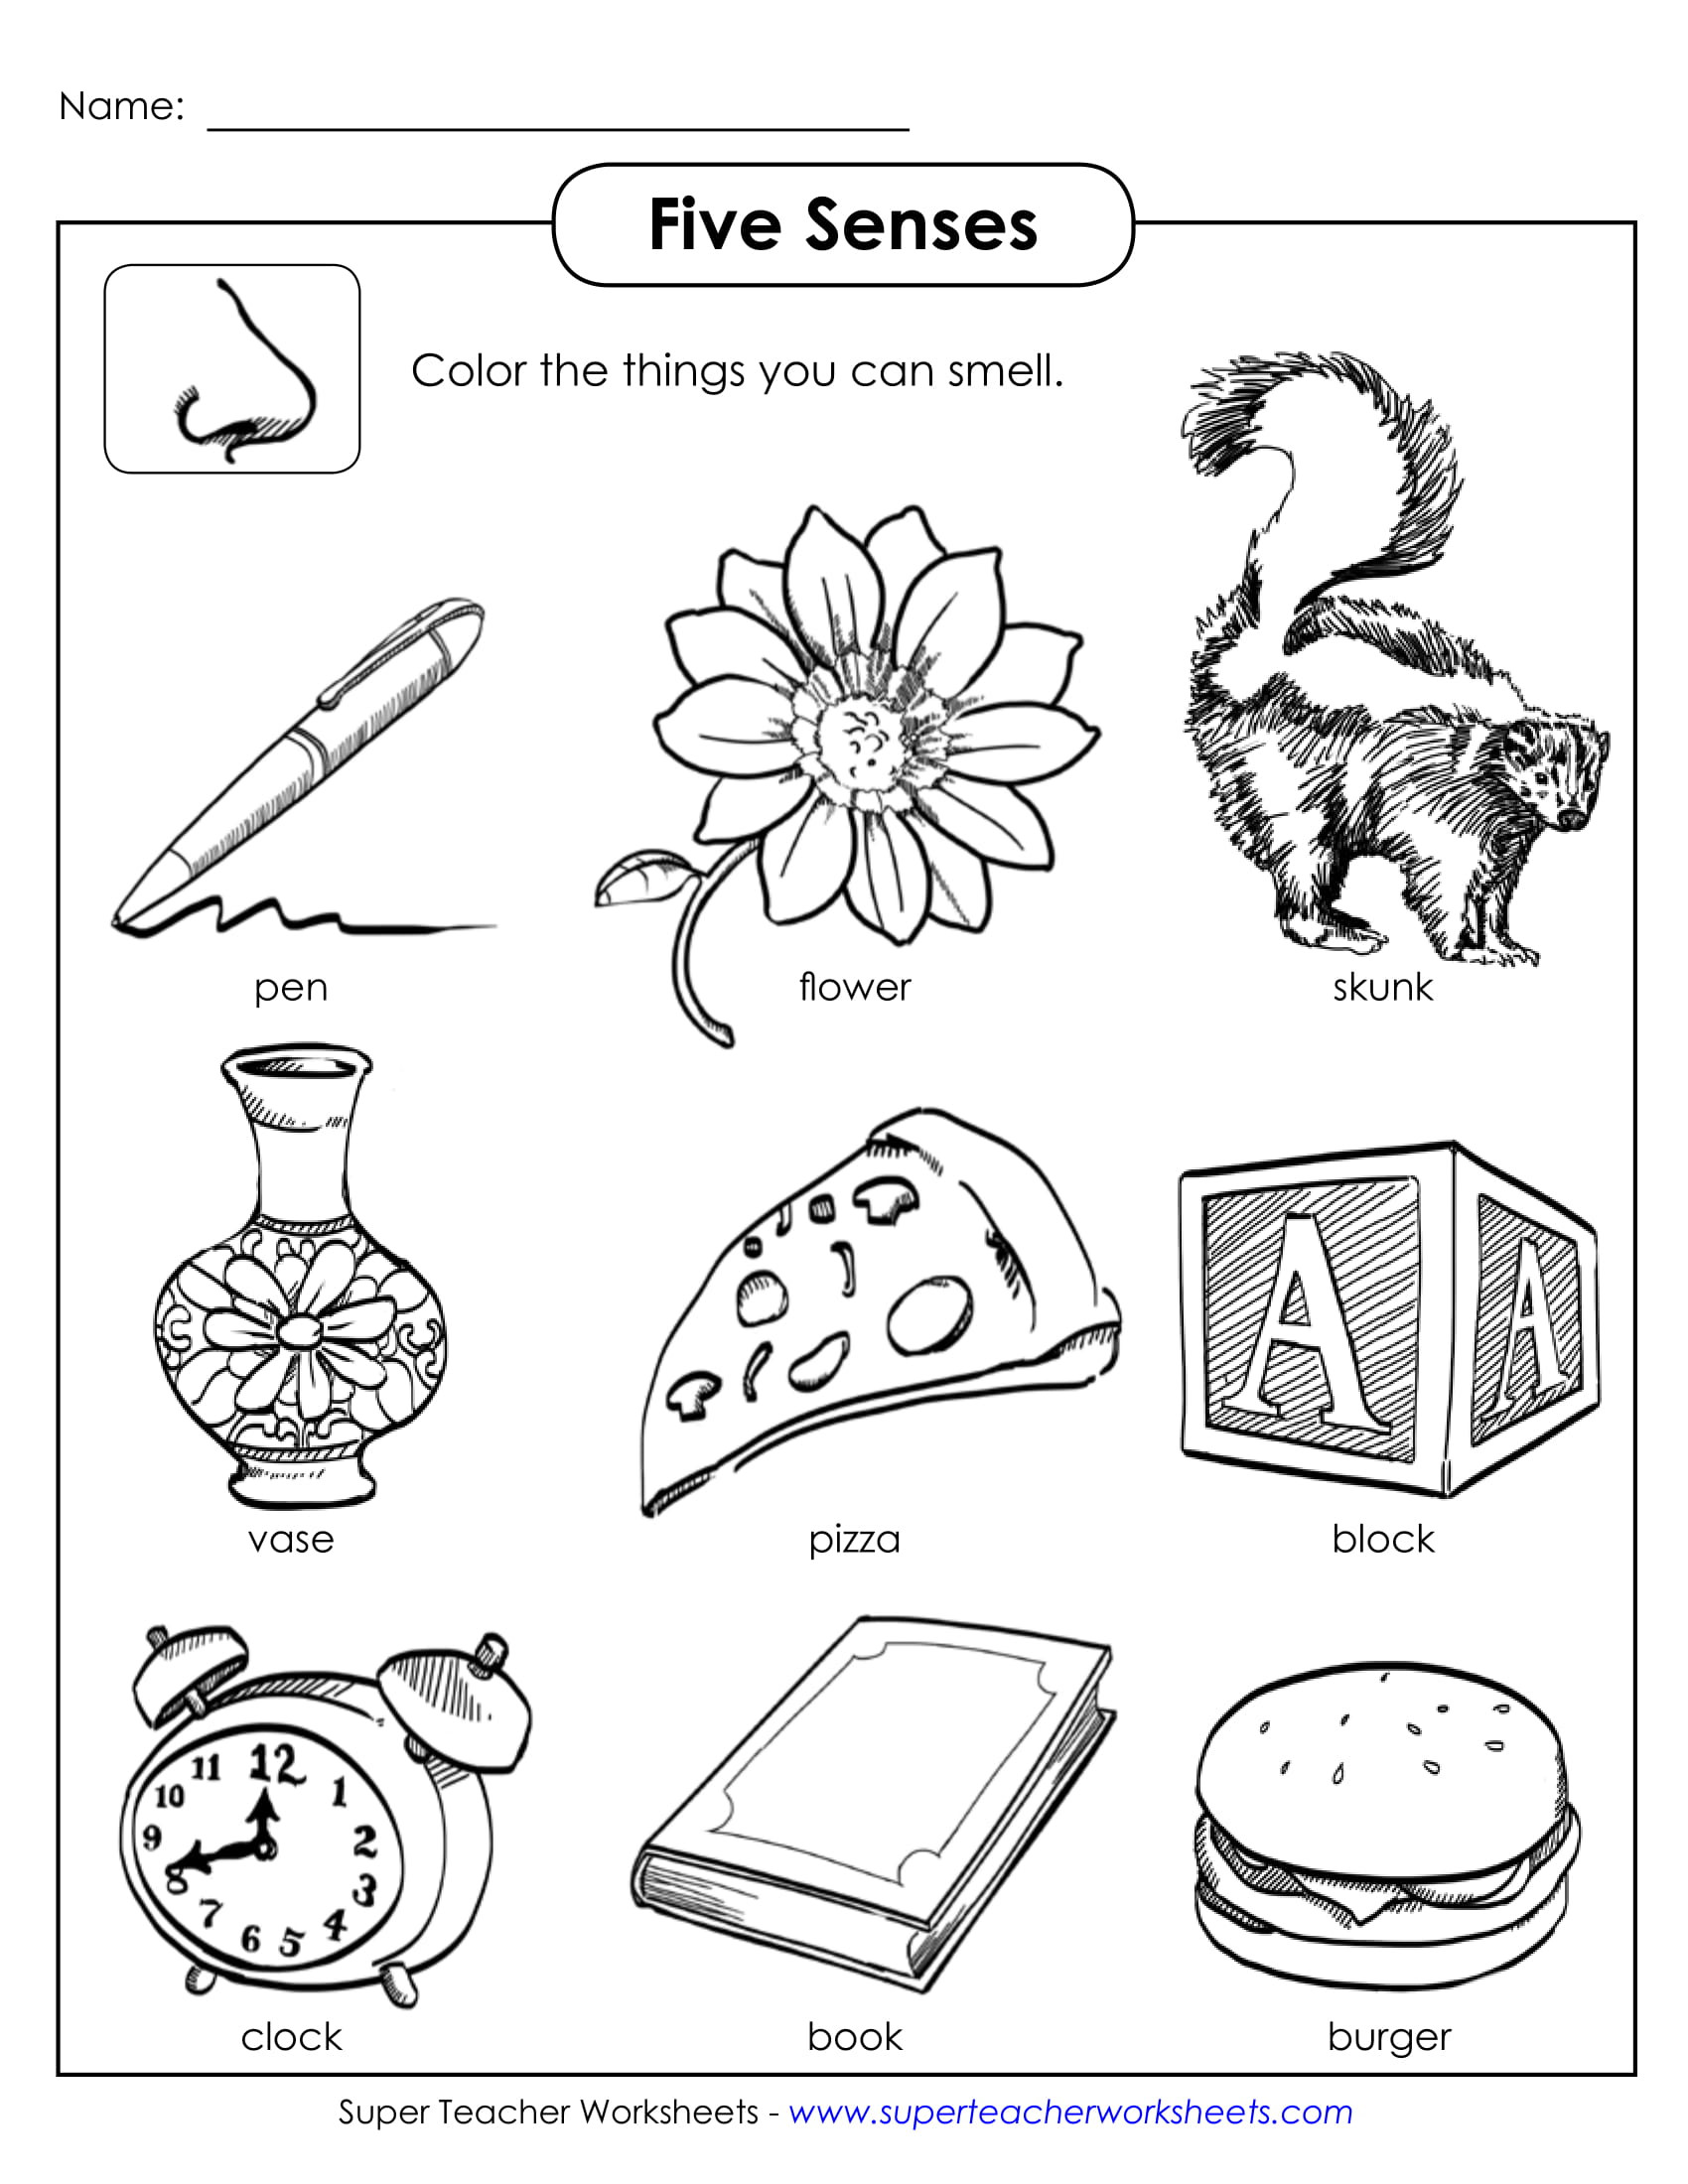 5 Senses Worksheet Preschool Hiddenfashionhistory Free and Roll Worksheets Senses for